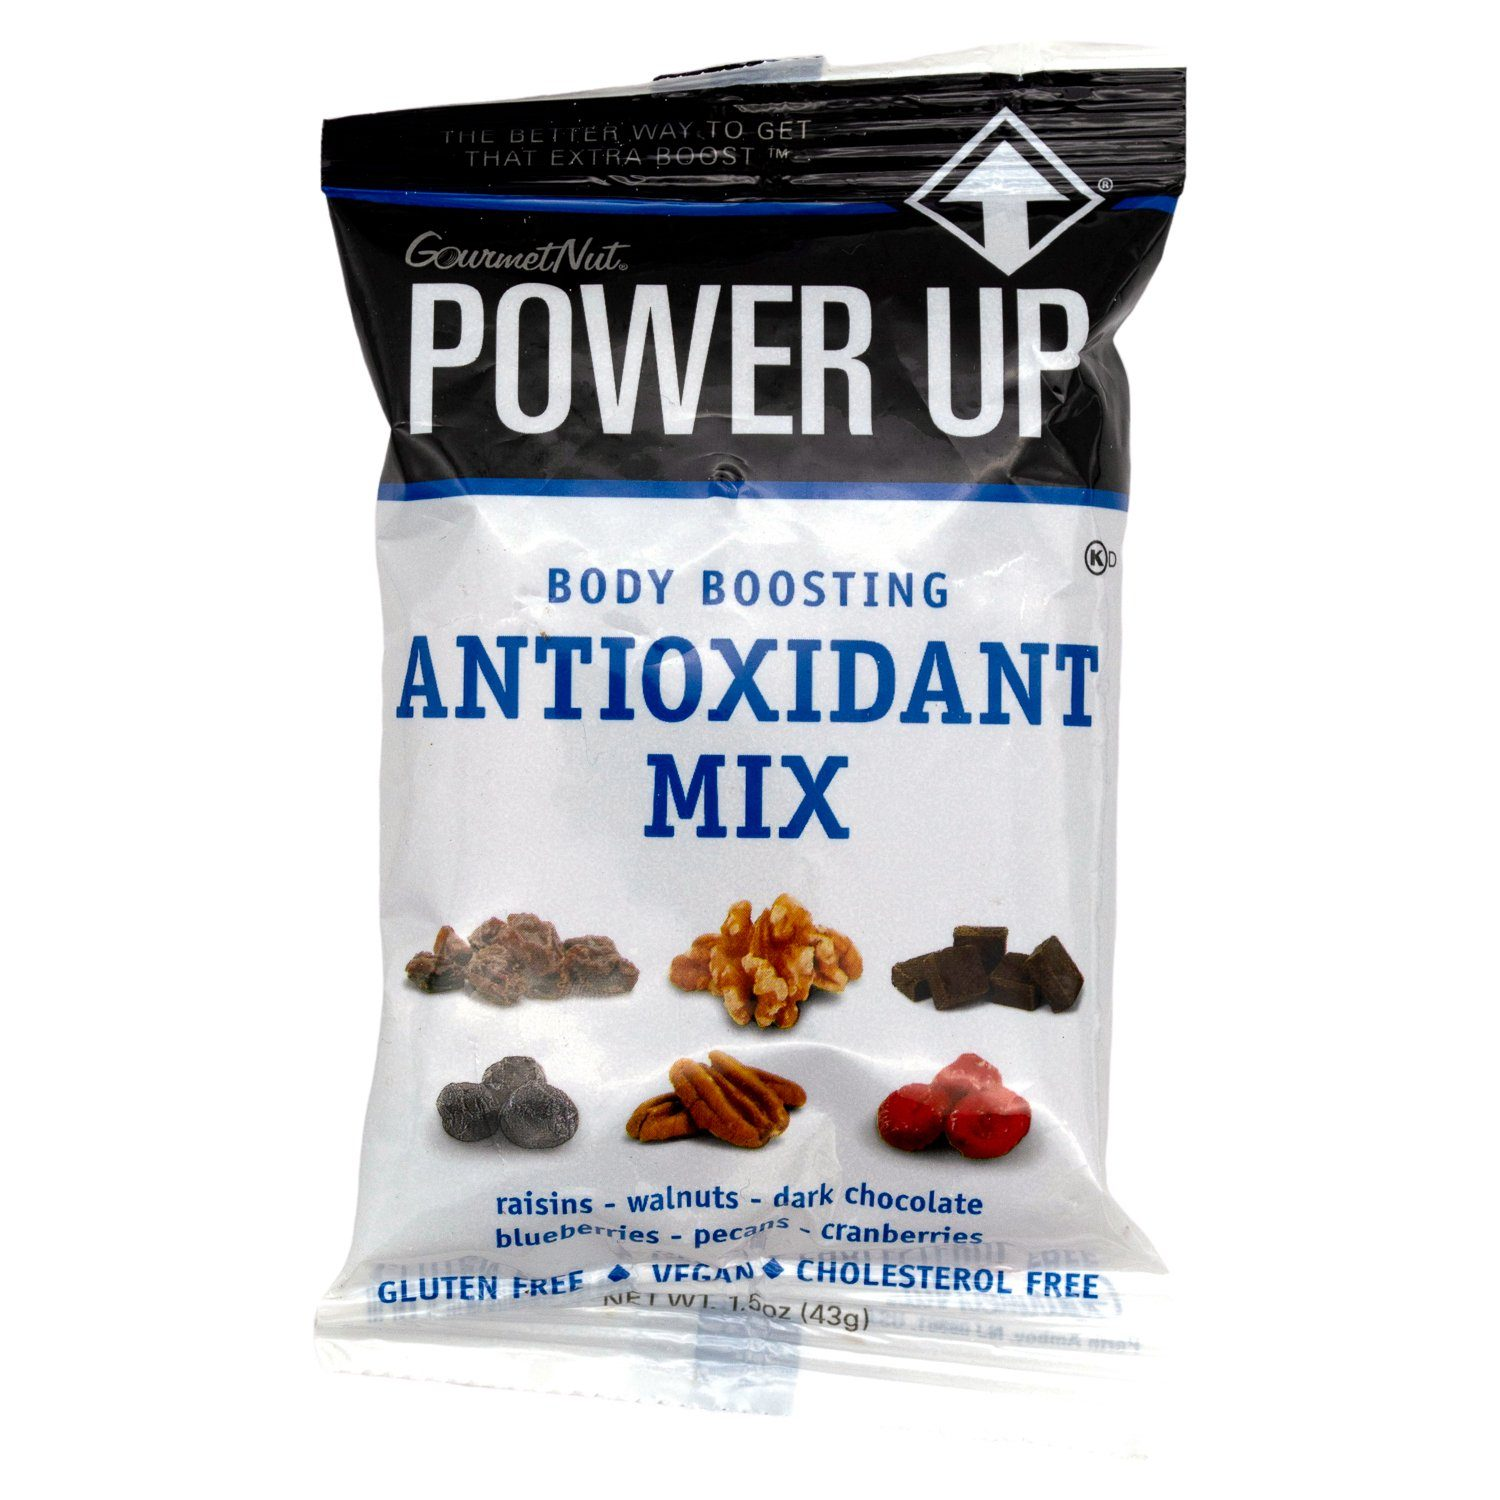 Power Up Trail Mix Gourmet Nut Antioxidant Mix 1.5 Ounce